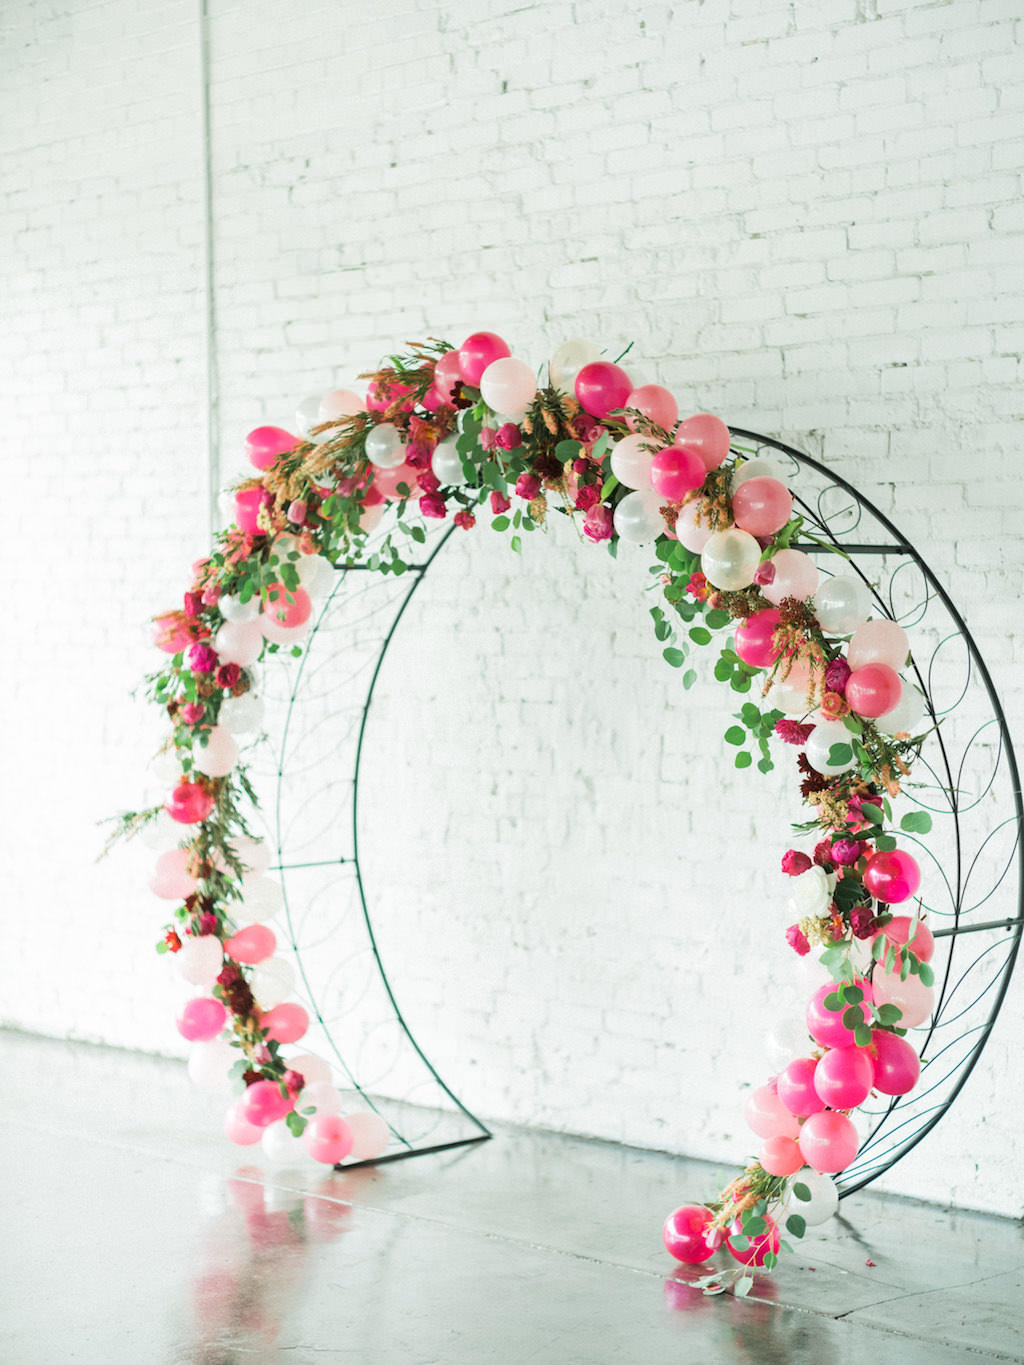 Pink and White Balloon, Branches, Greenery and Fuchsia Flowers Iron Circle Modern Wedding Arch   Lakeland Industrial Wedding Venue Haus 820